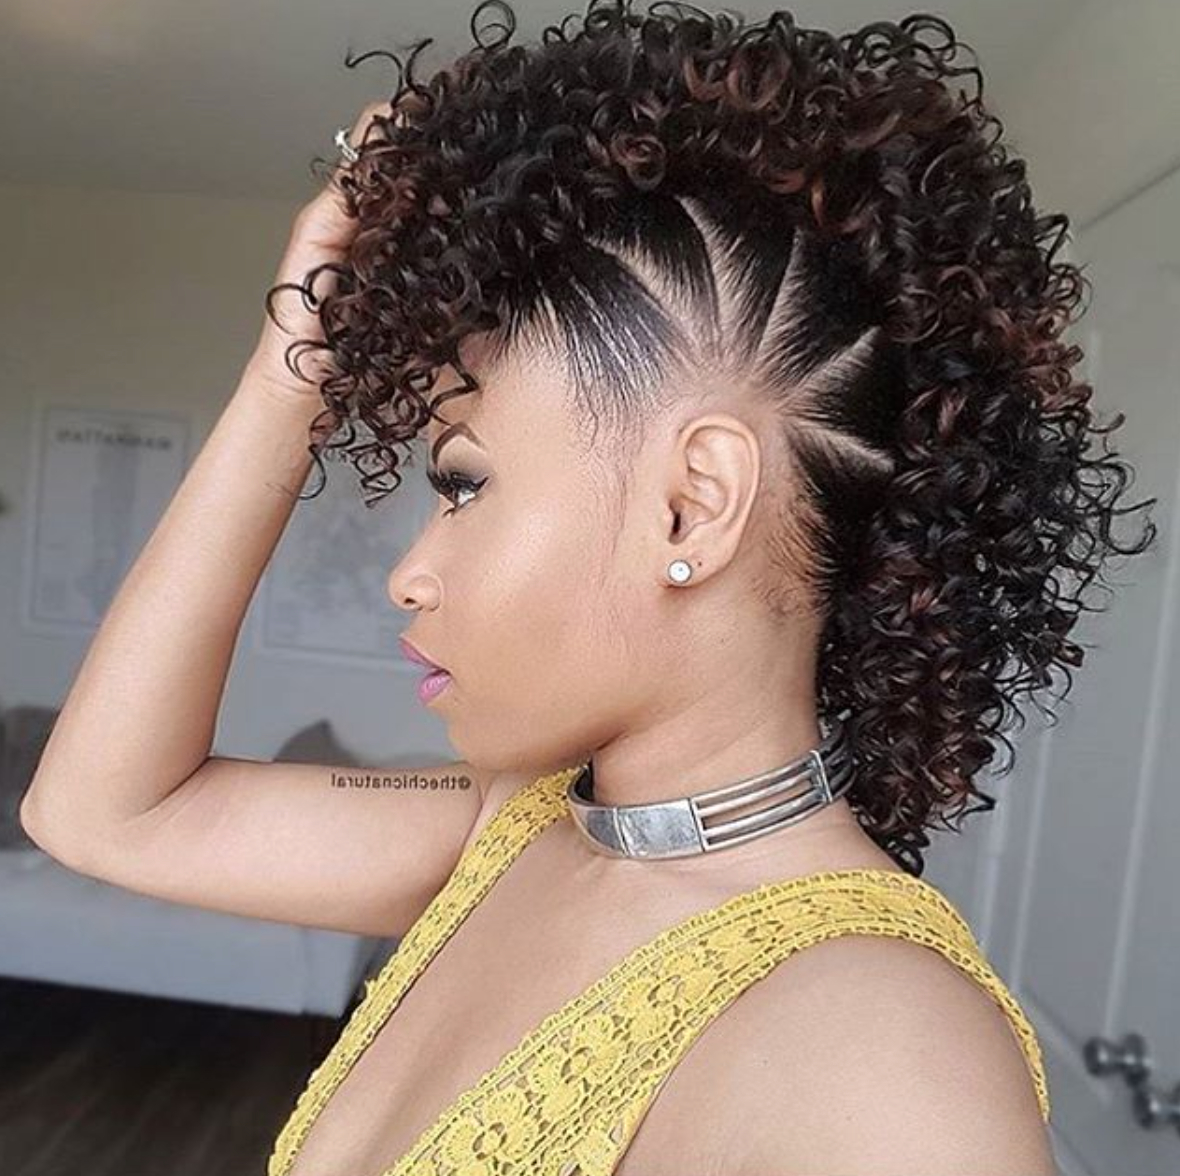 Mohawk Hairstyles For Most Current Curly Faux Mohawk Hairstyles (View 15 of 20)